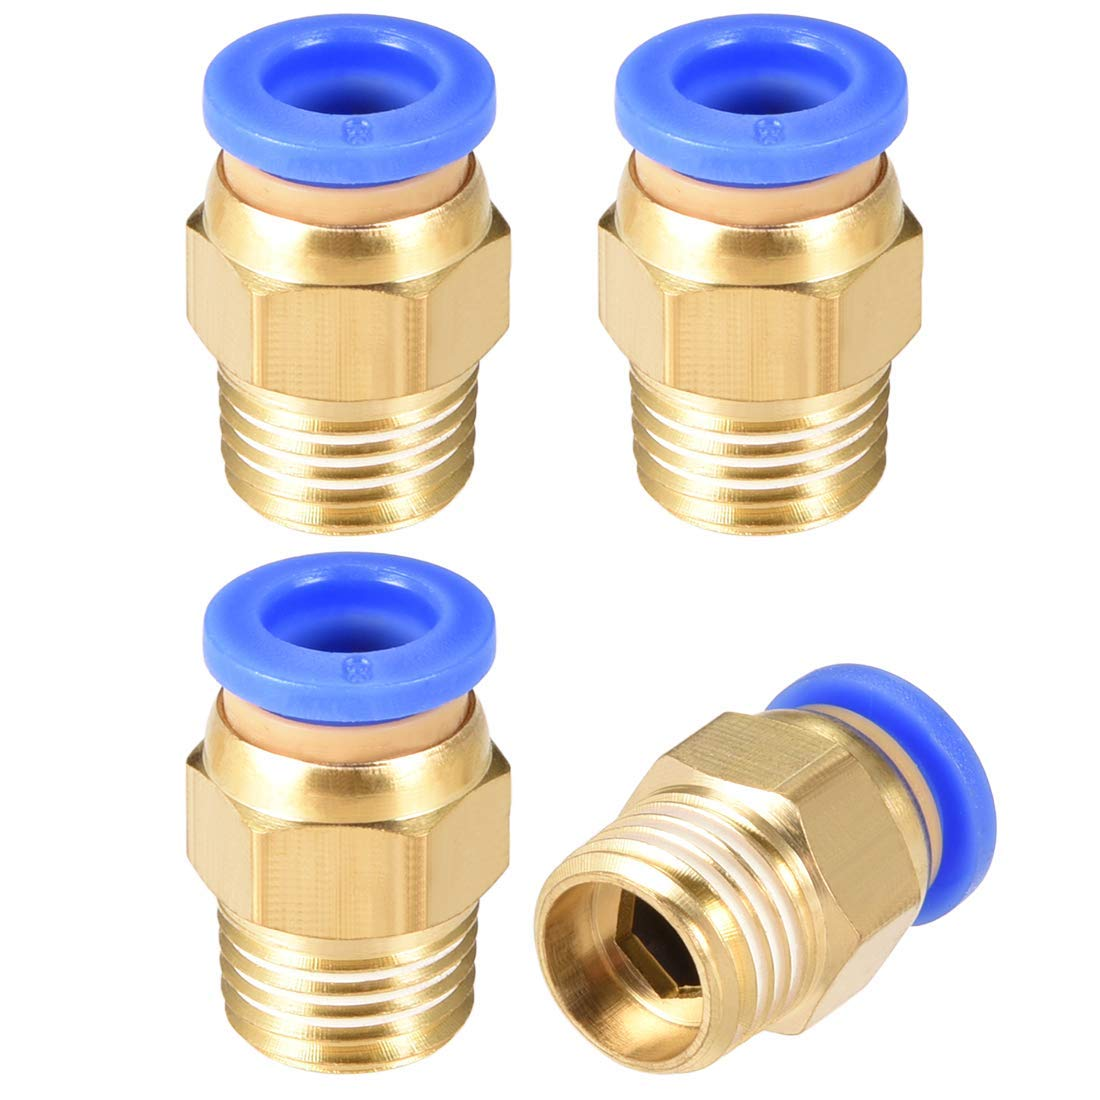 Straight Pneumatic Thrust for Quick Connect Connections G 1//4Male x 8 mm OD Tube 4 Pieces